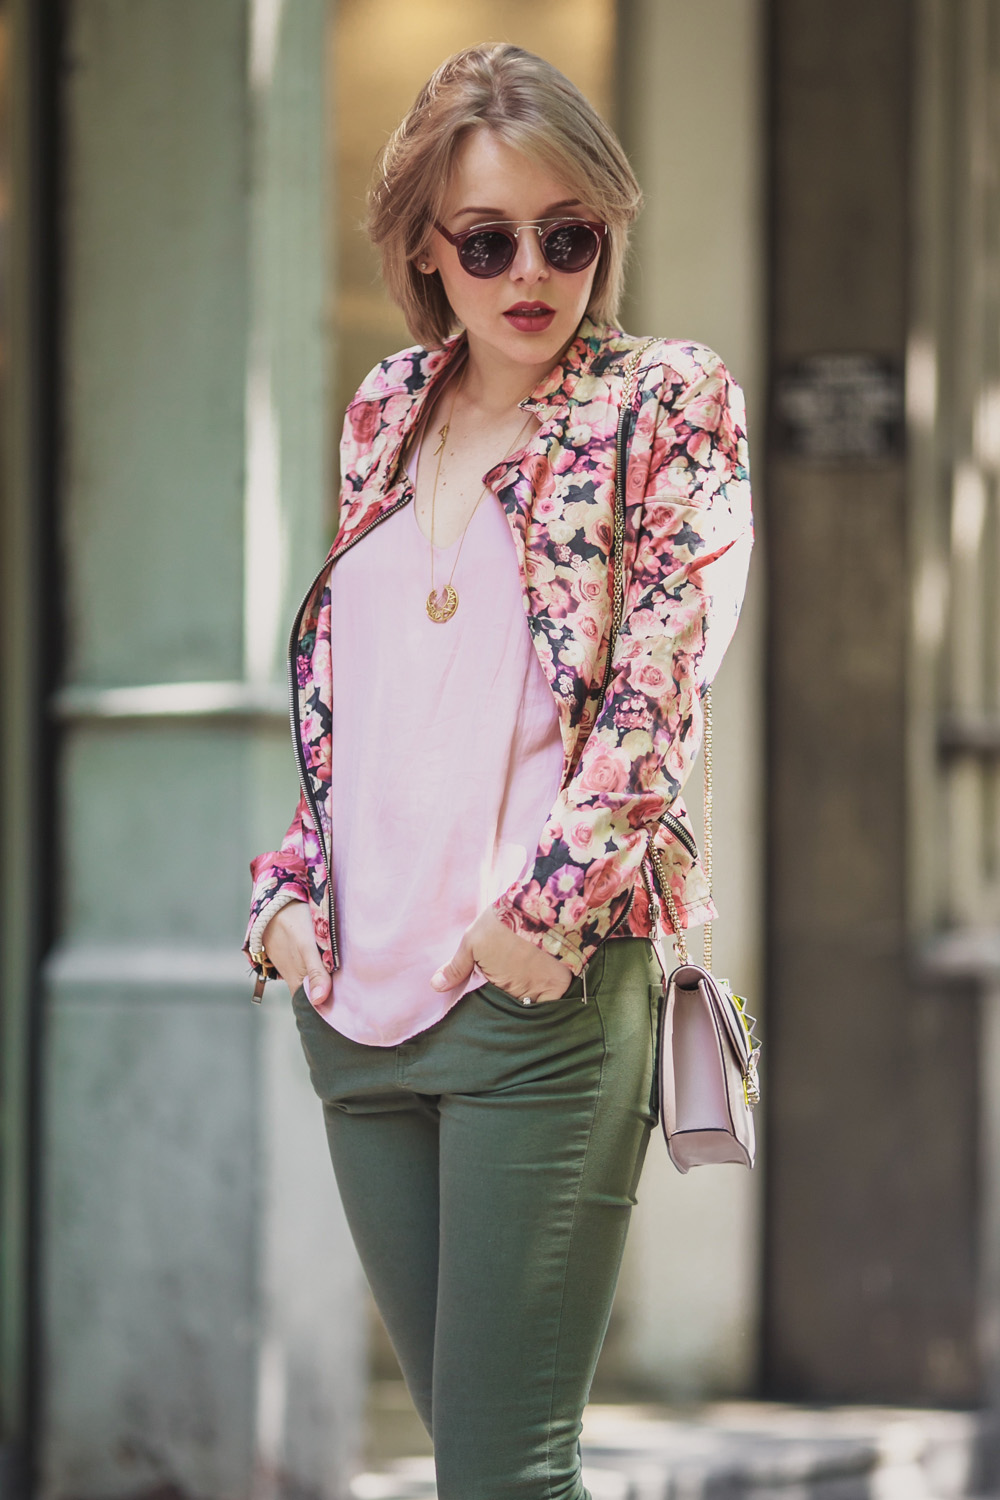 BARCELONA IN FLOWER BIKER JACKET - THECABLOOK by Darya Kamalova